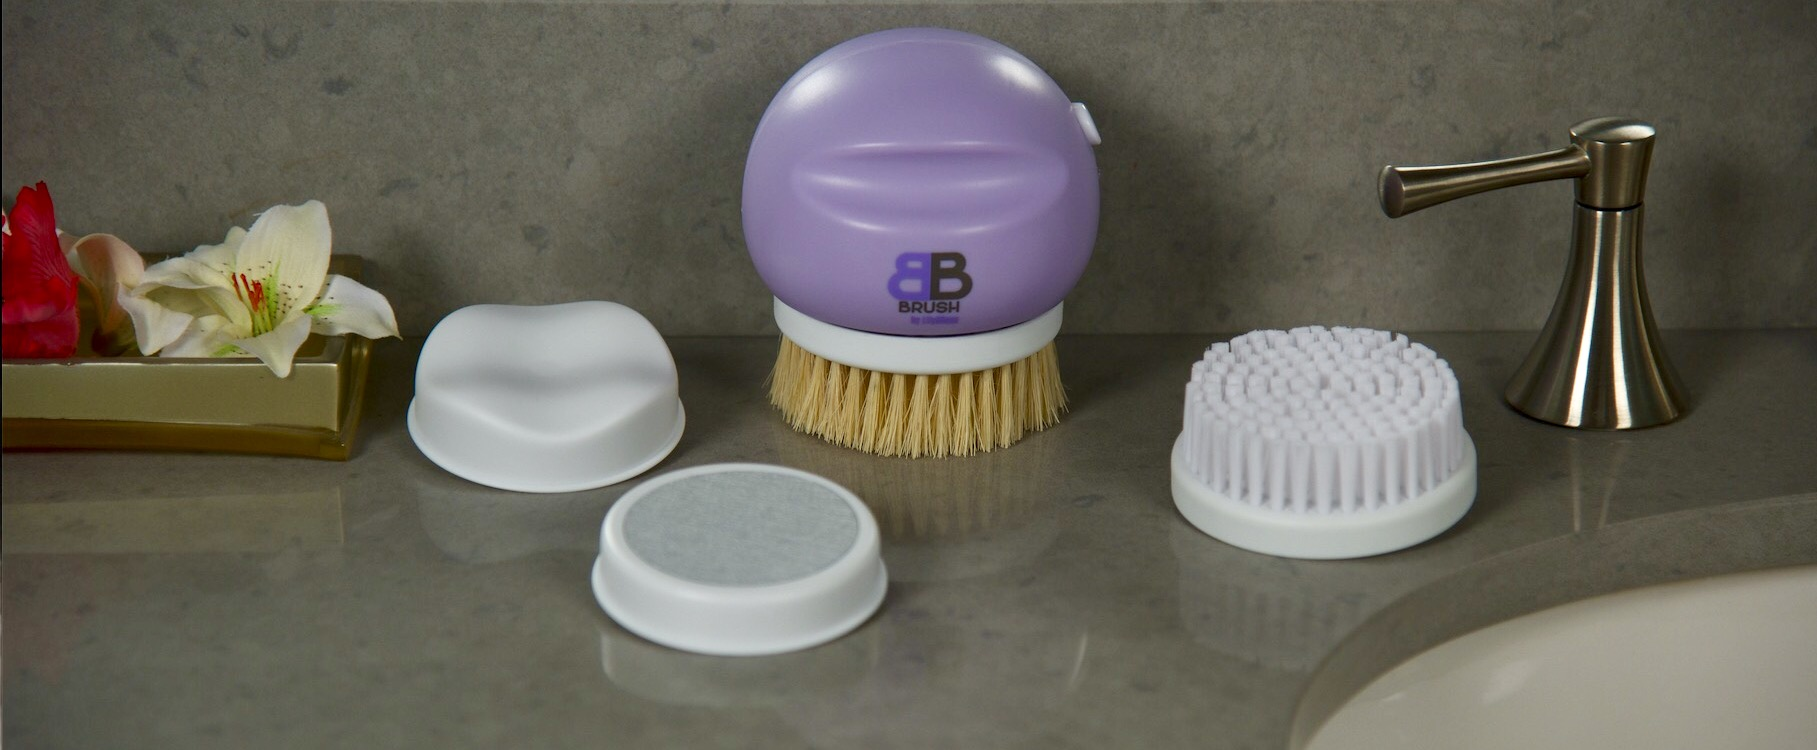 BB Brush, BBBrush.com